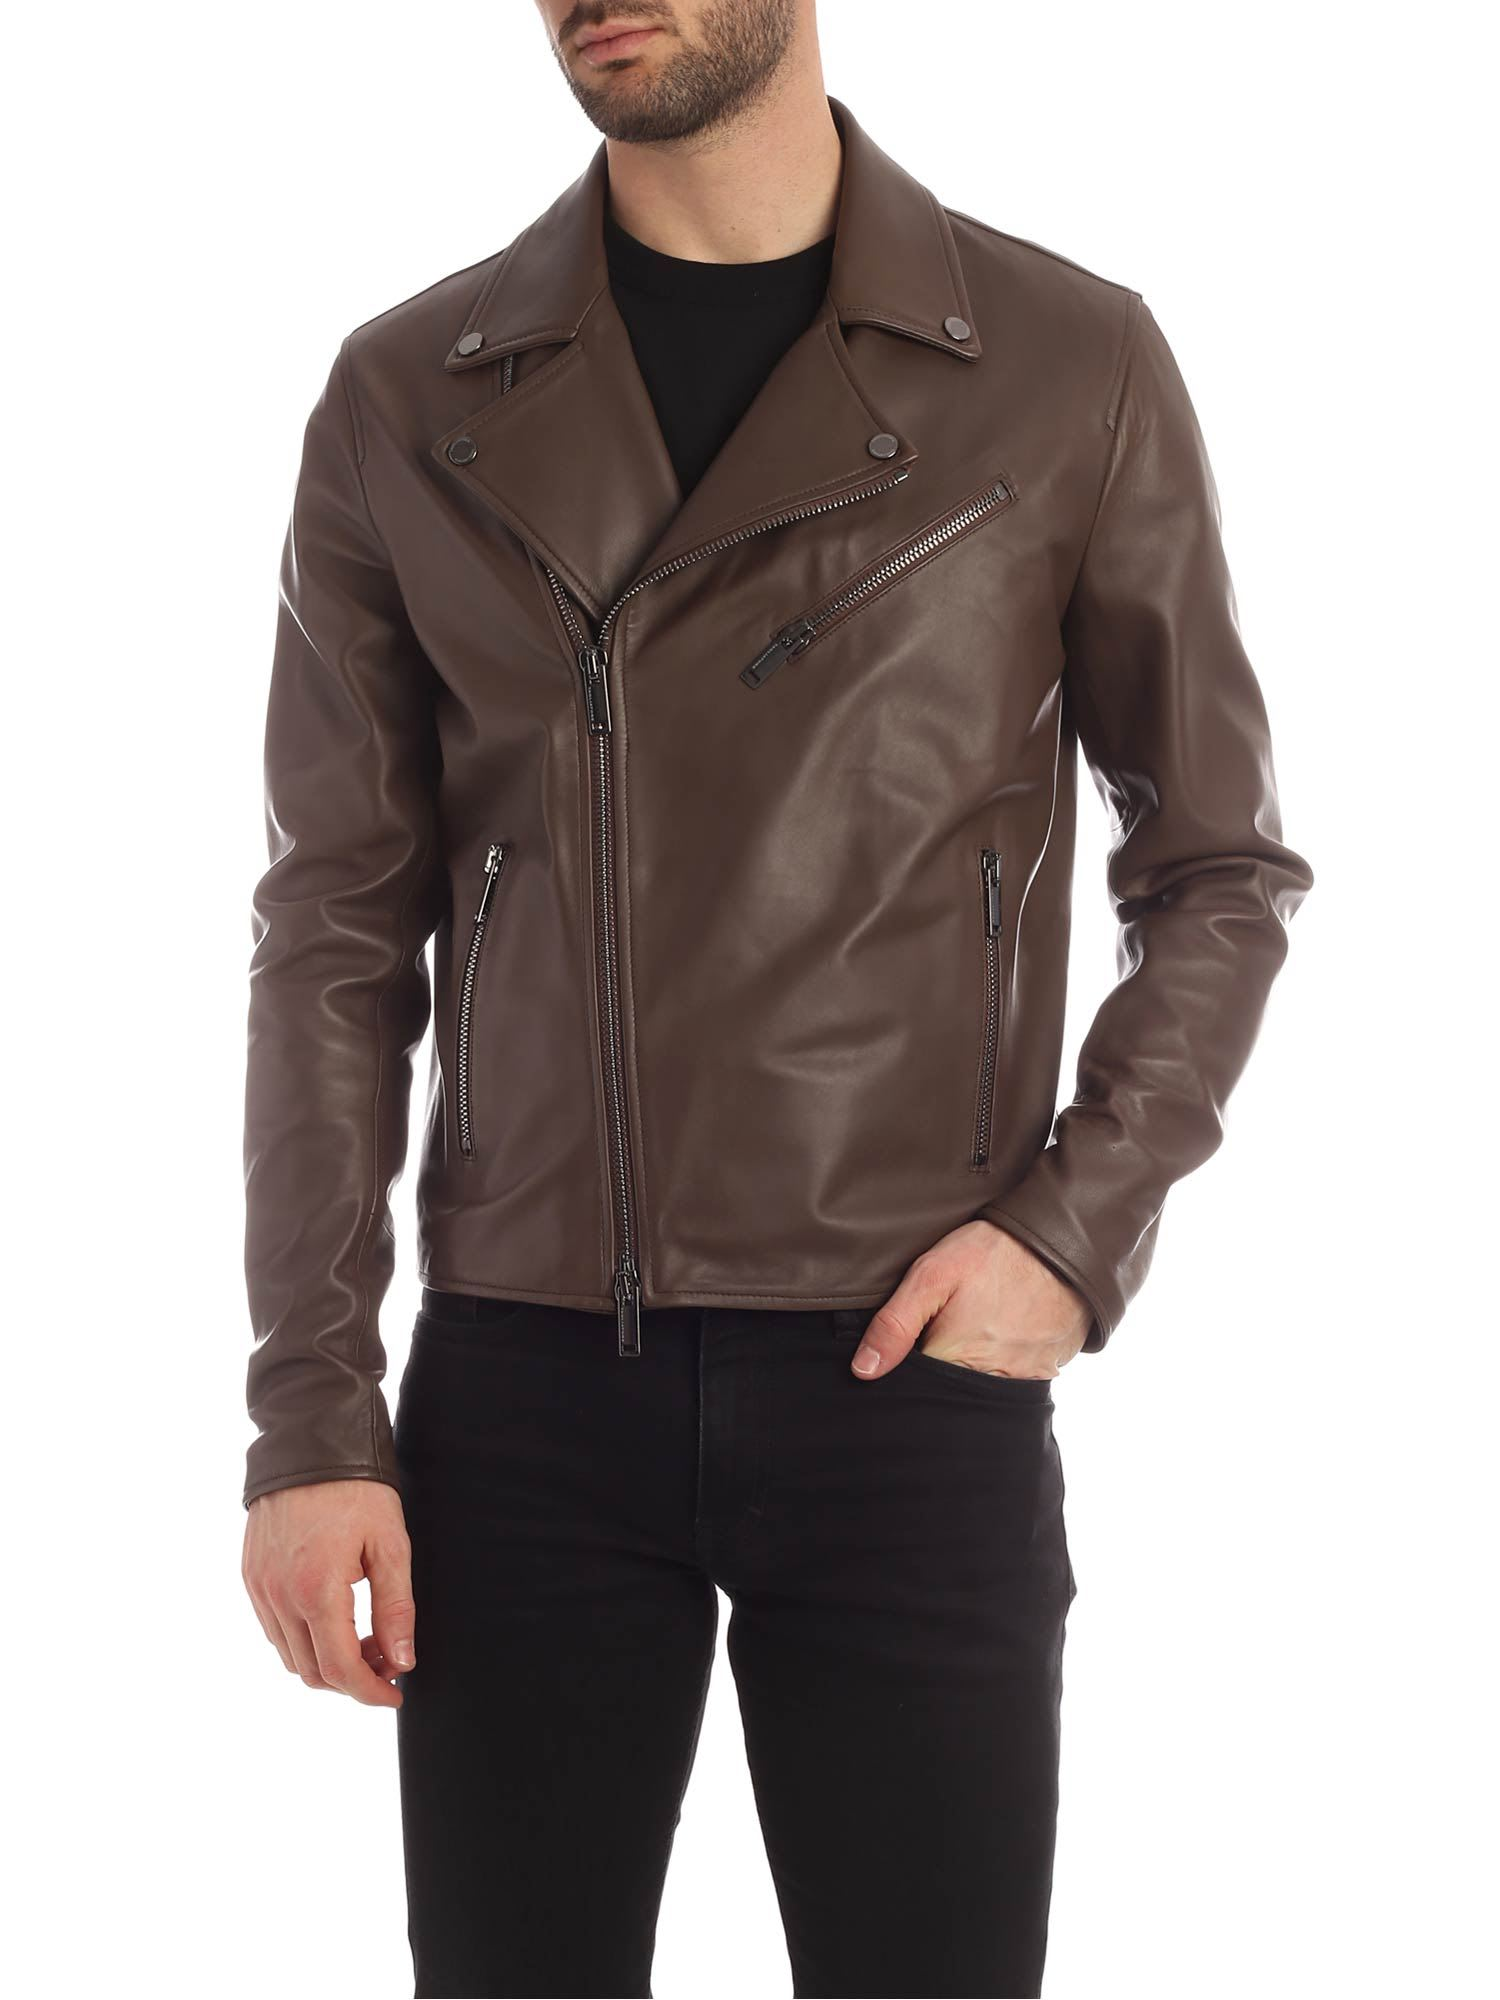 Tagliatore Brown Biker Jacket